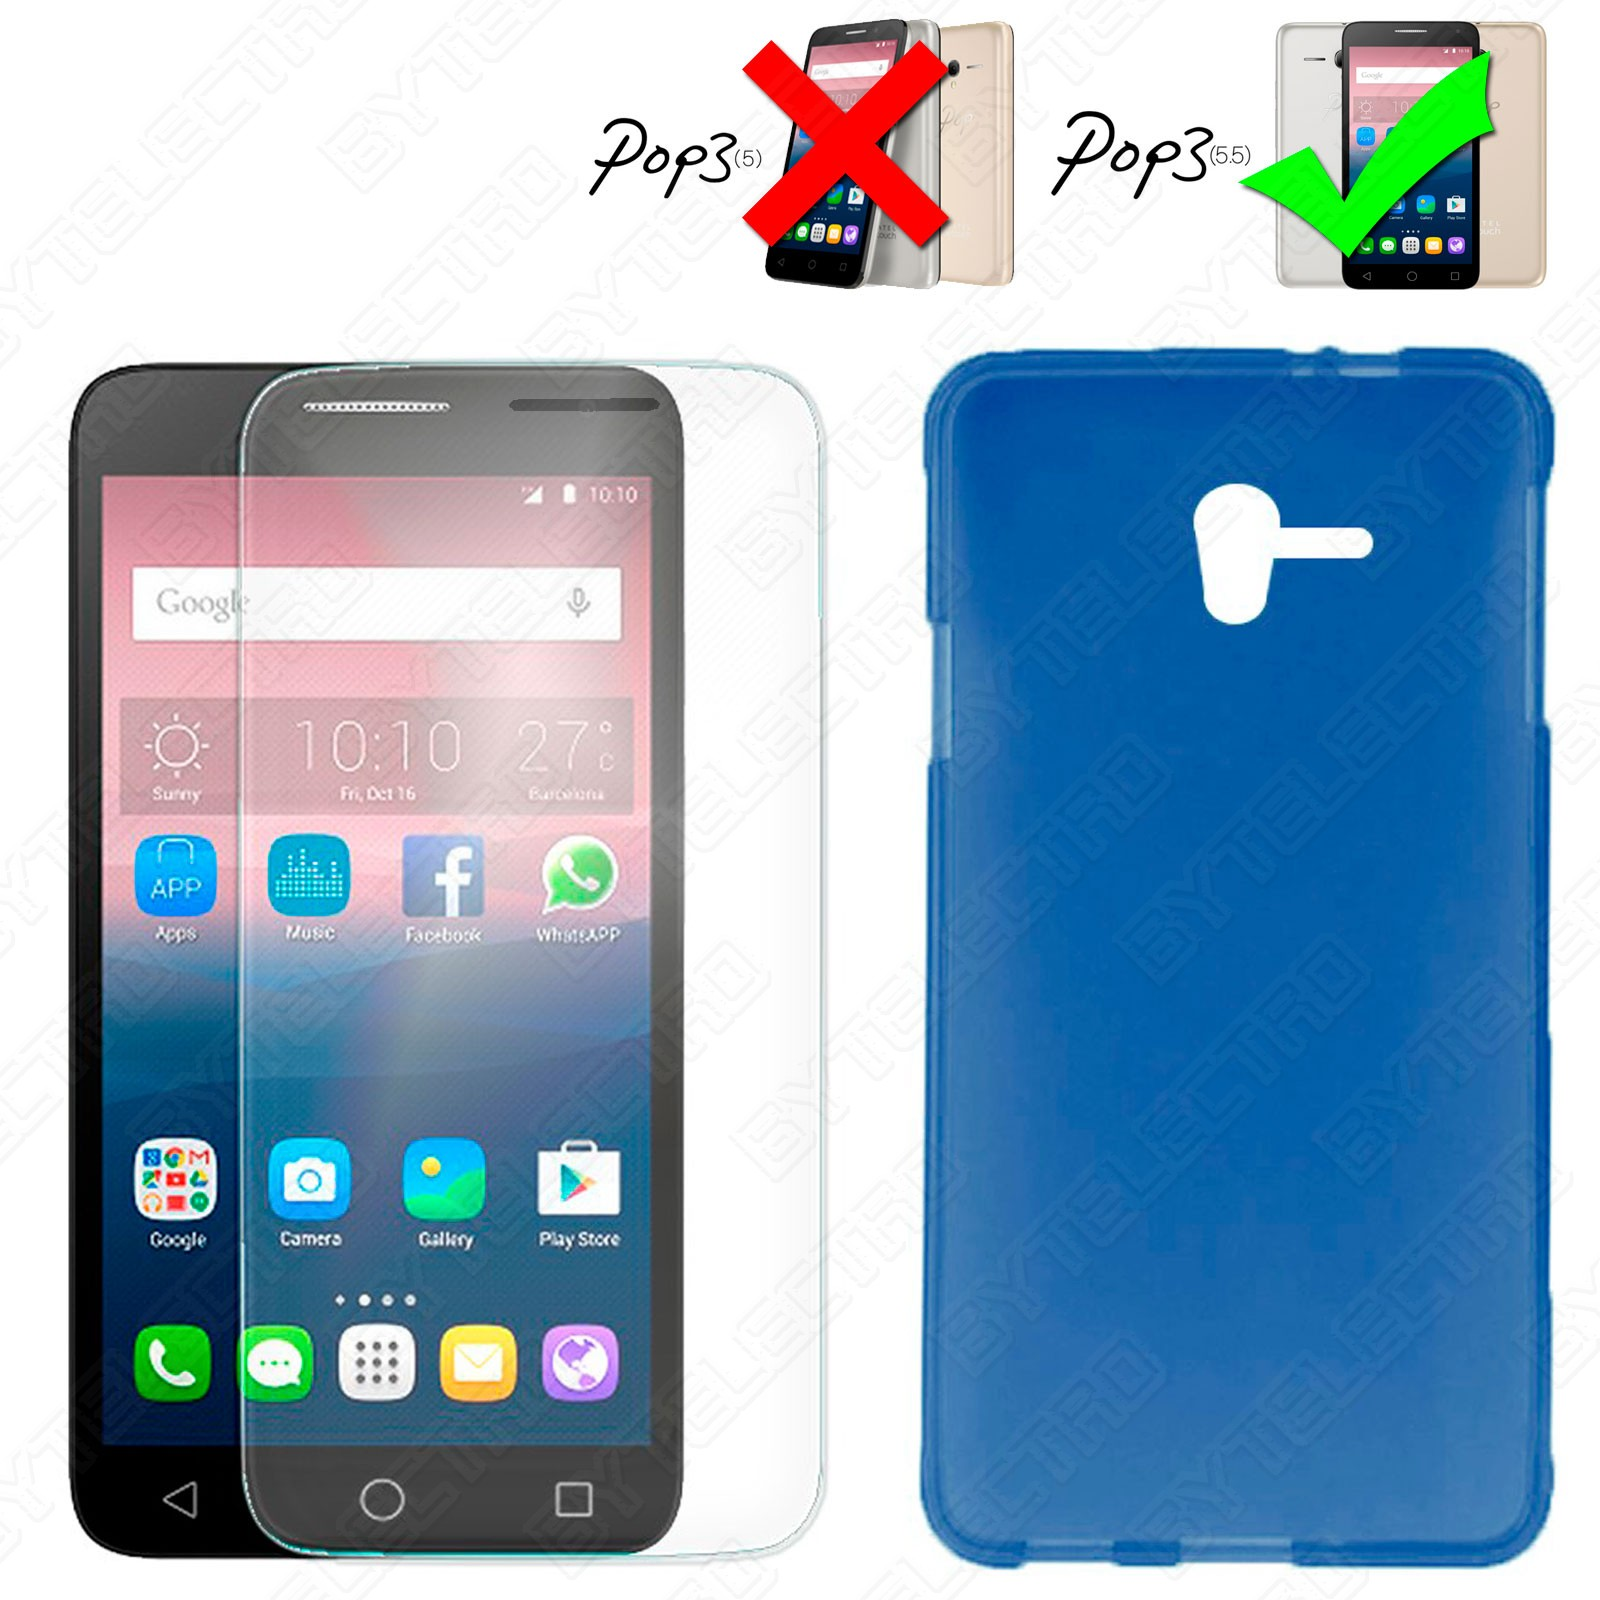 Funda Gel TPU + Cristal Templado ALCATEL ONETOUCH POP 3 (5.5) (Varios Colores) 3